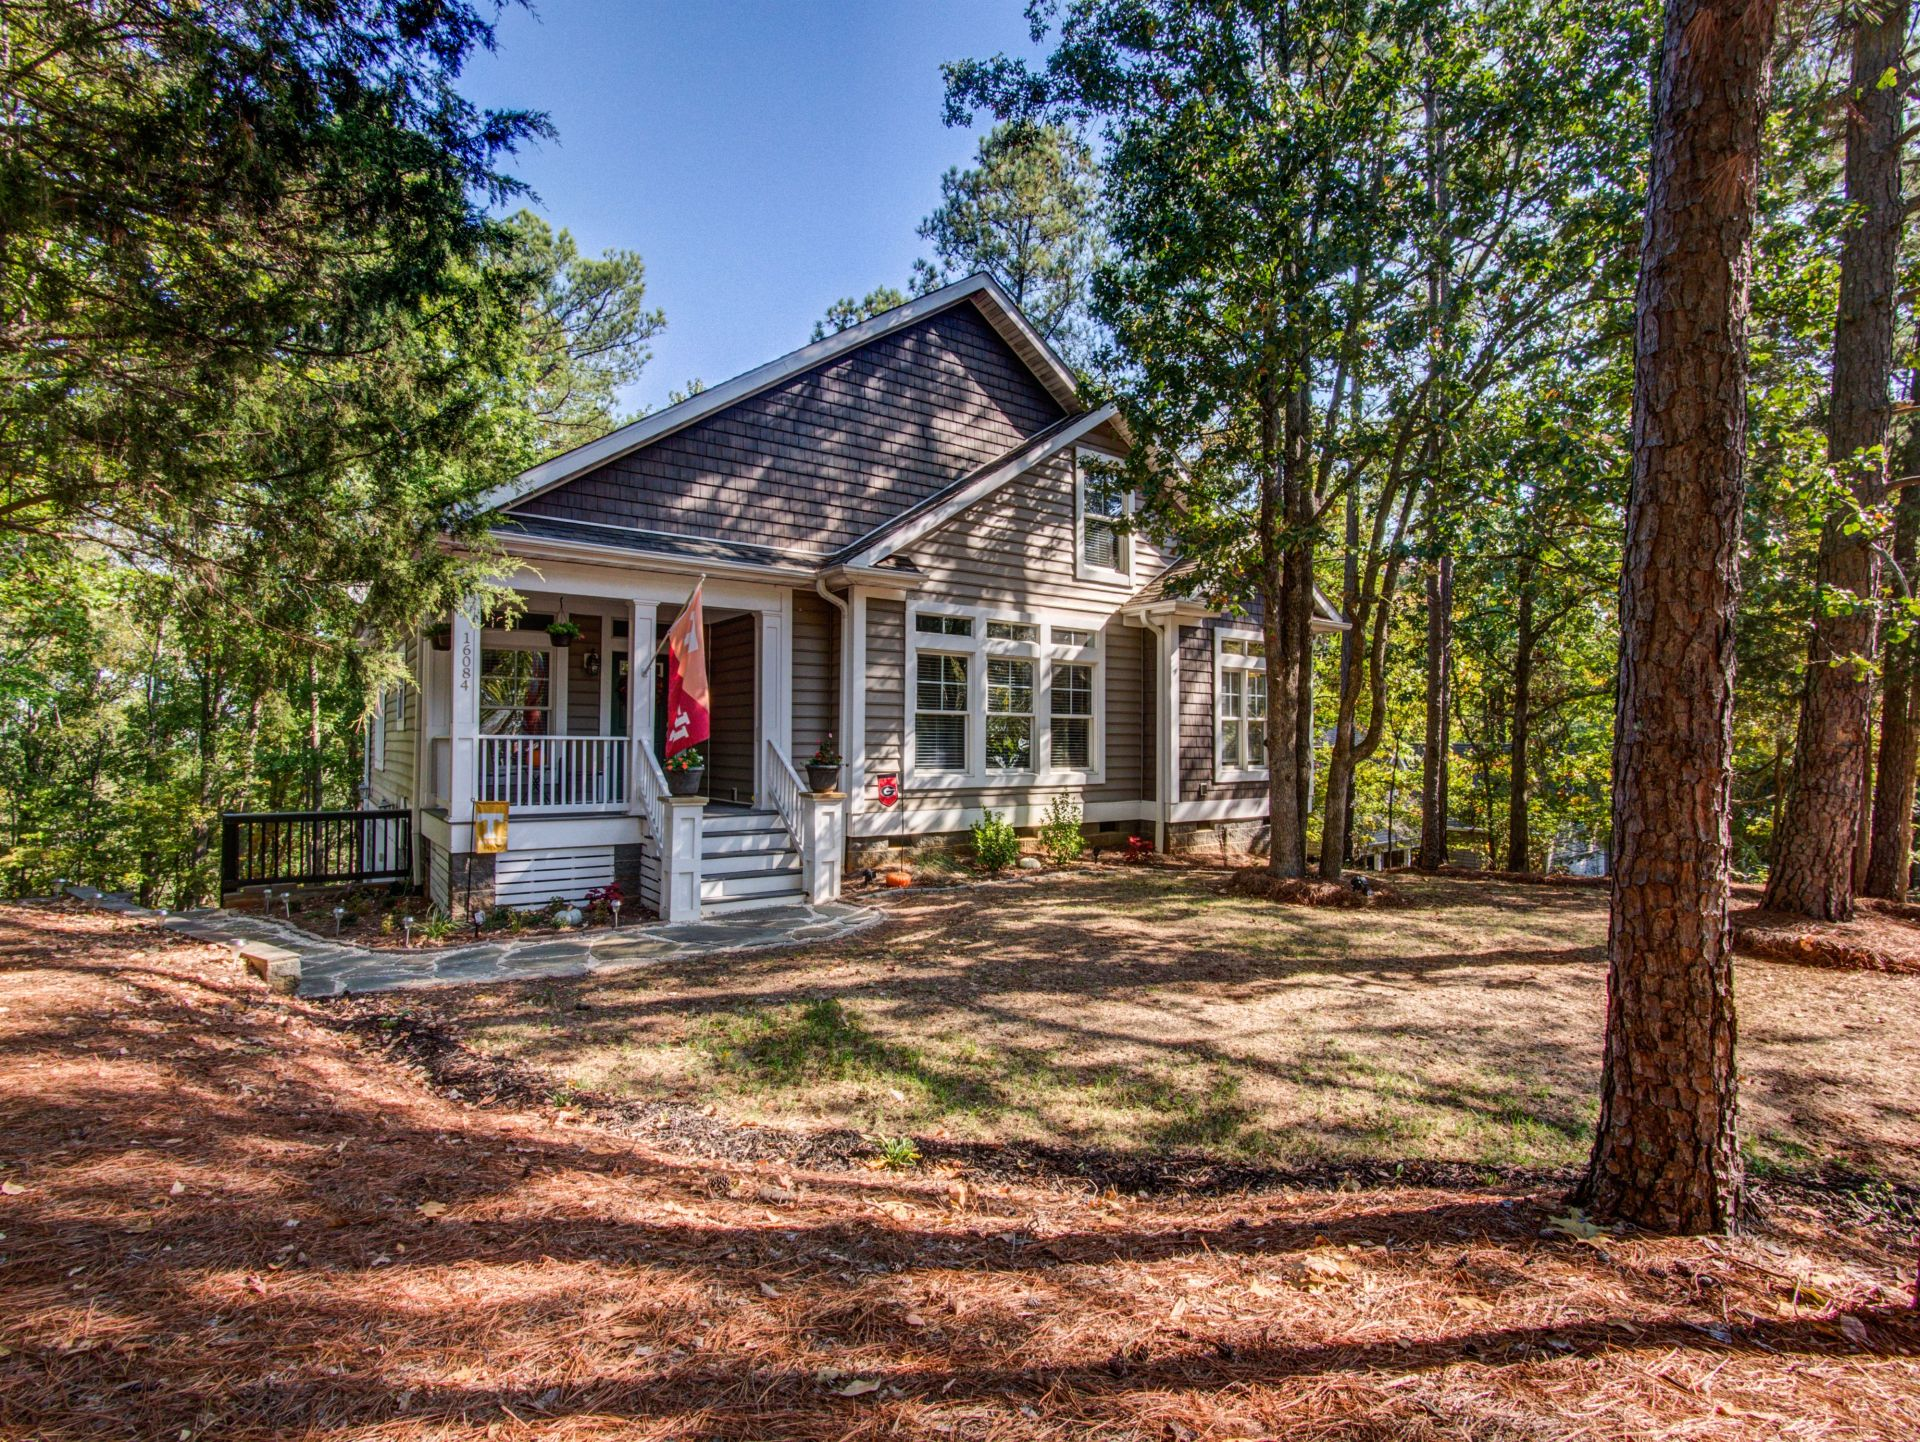 JUST LISTED!! BEAUTIFUL HOME IN THE HEART OF TEGA CAY for $325,000!